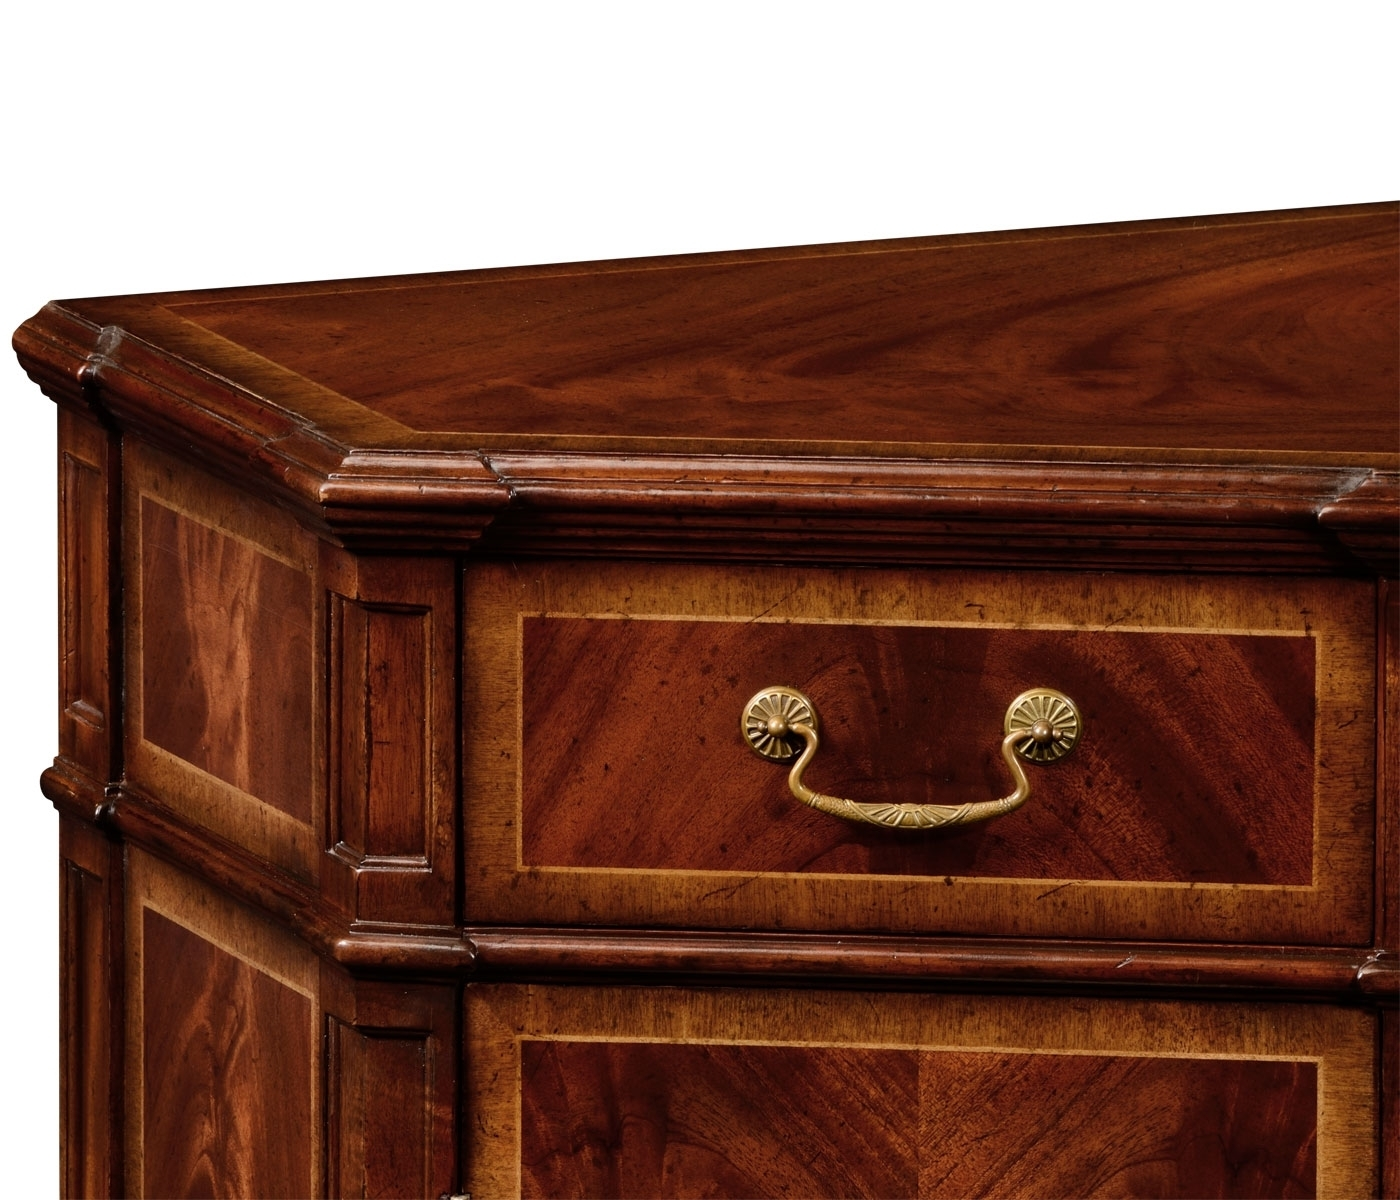 Crotch Mahogany Starburst Sideboard Side Cabinet throughout Starburst 3 Door Sideboards (Image 11 of 30)